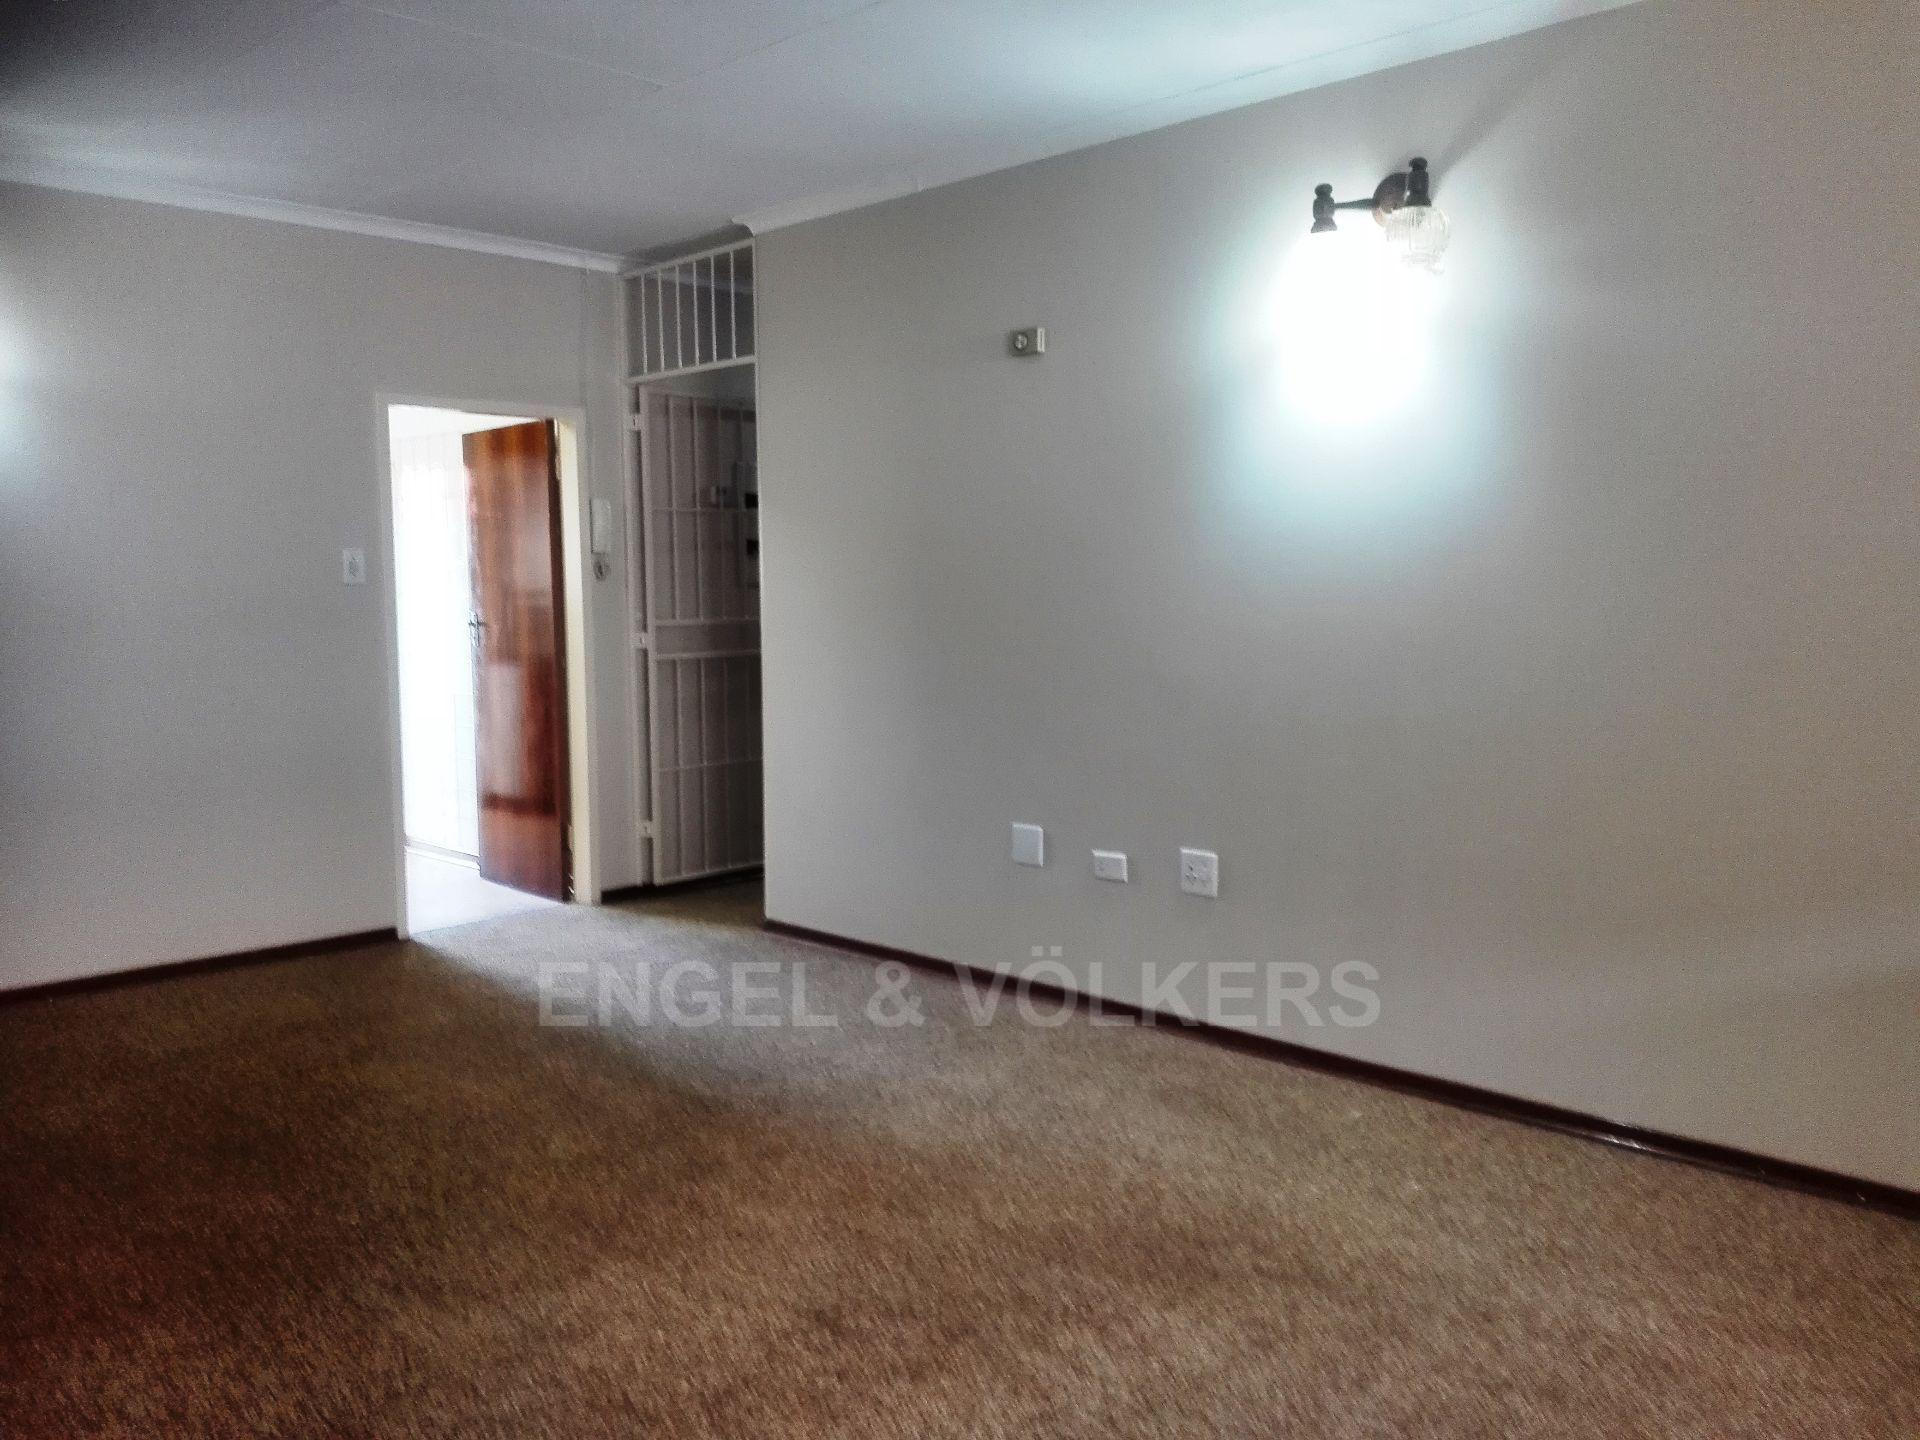 Potchefstroom property for sale. Ref No: 13498695. Picture no 11